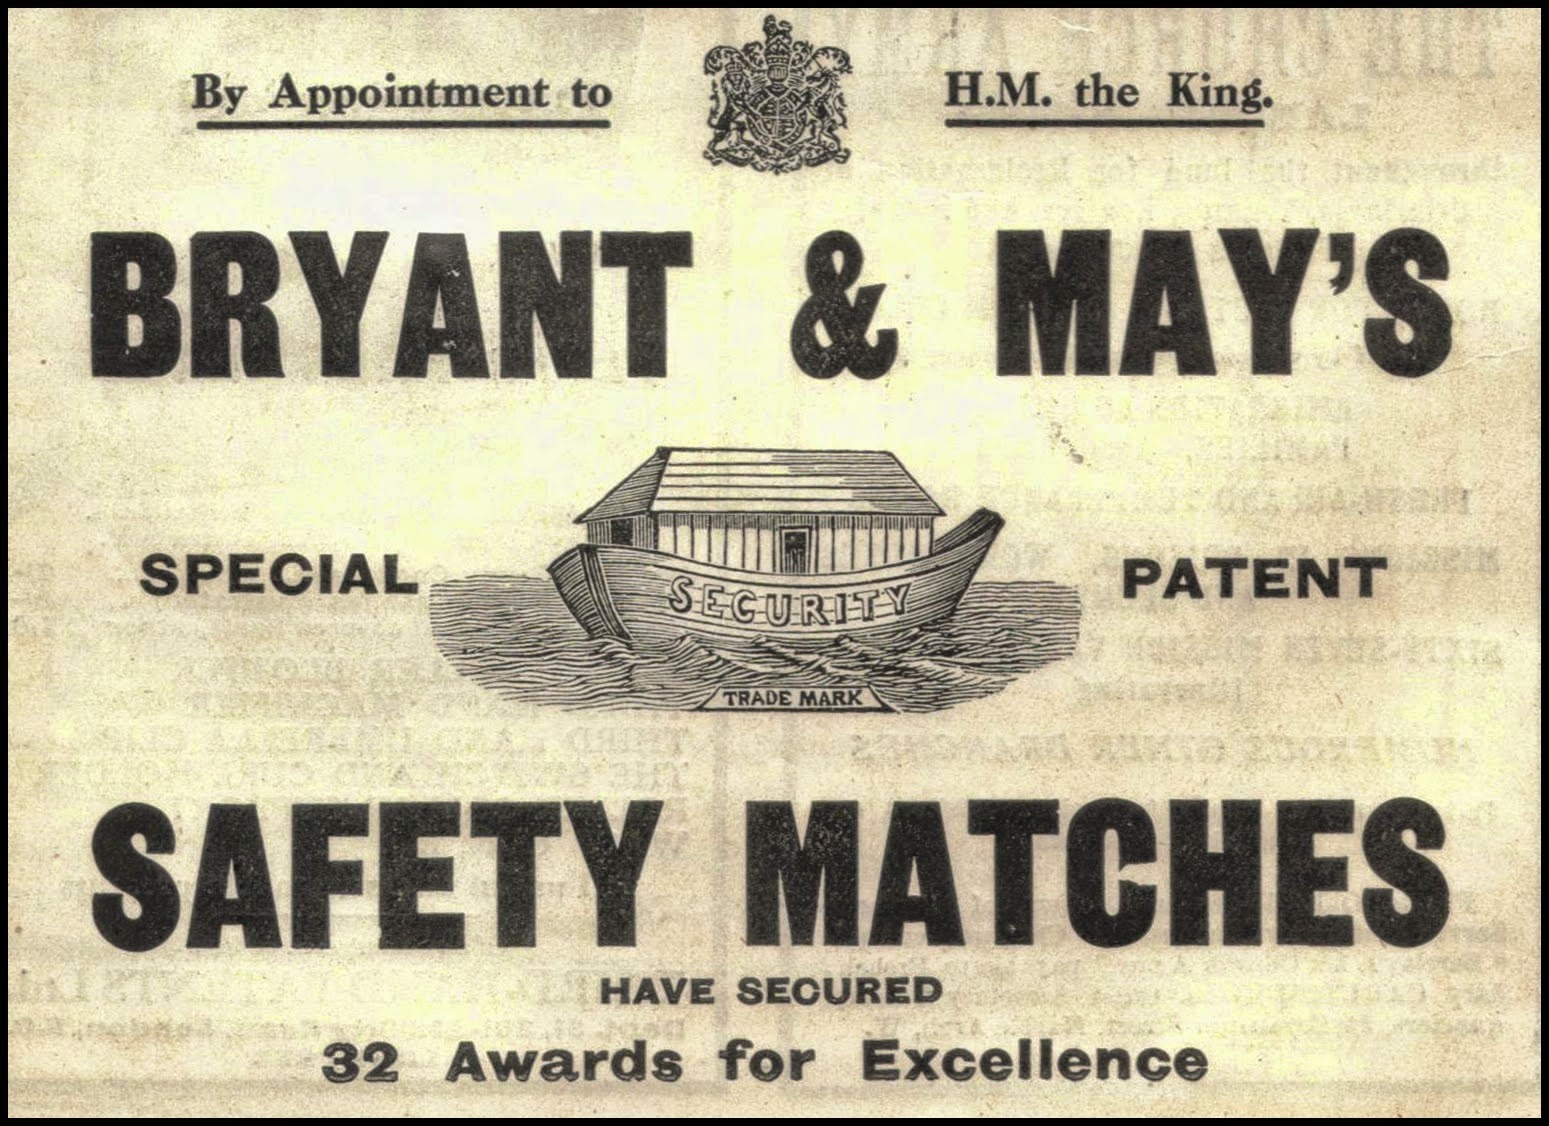 1914 advert for Bryant & May's matches